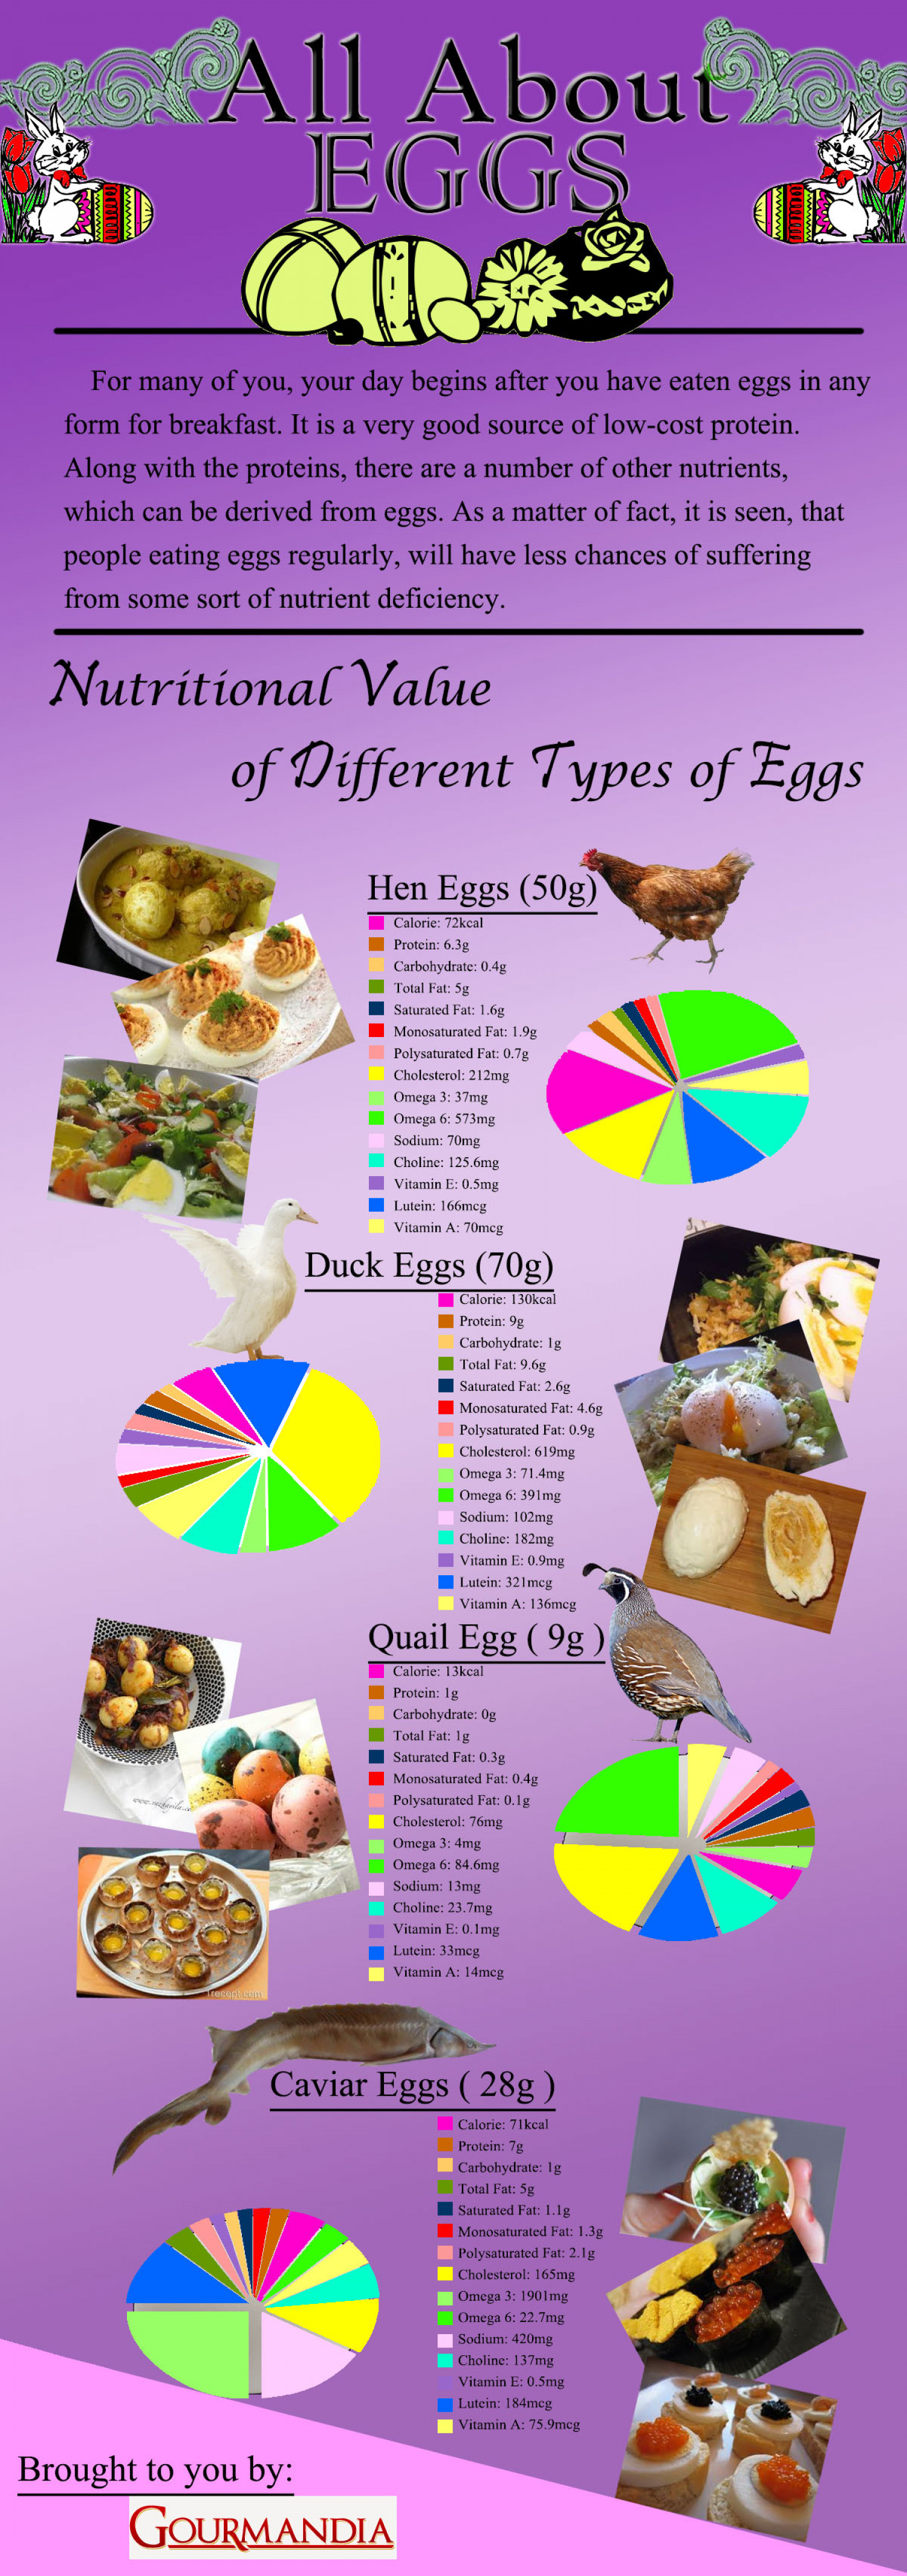 All About Eggs Infographic